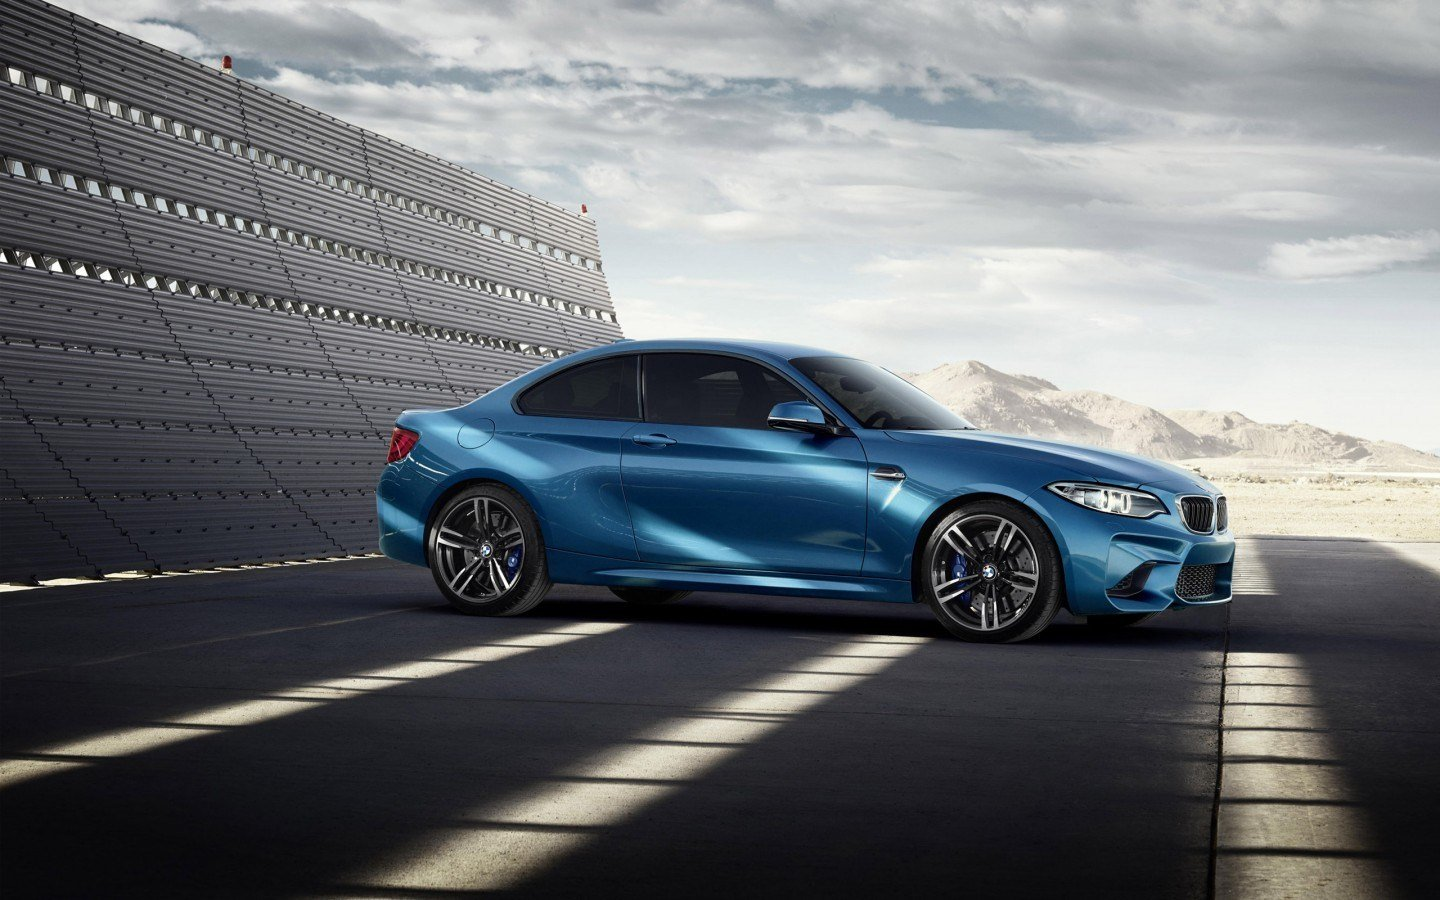 New 2016 Bmw M2 Wallpaper Hd Car Wallpapers Id 6449 On This Month